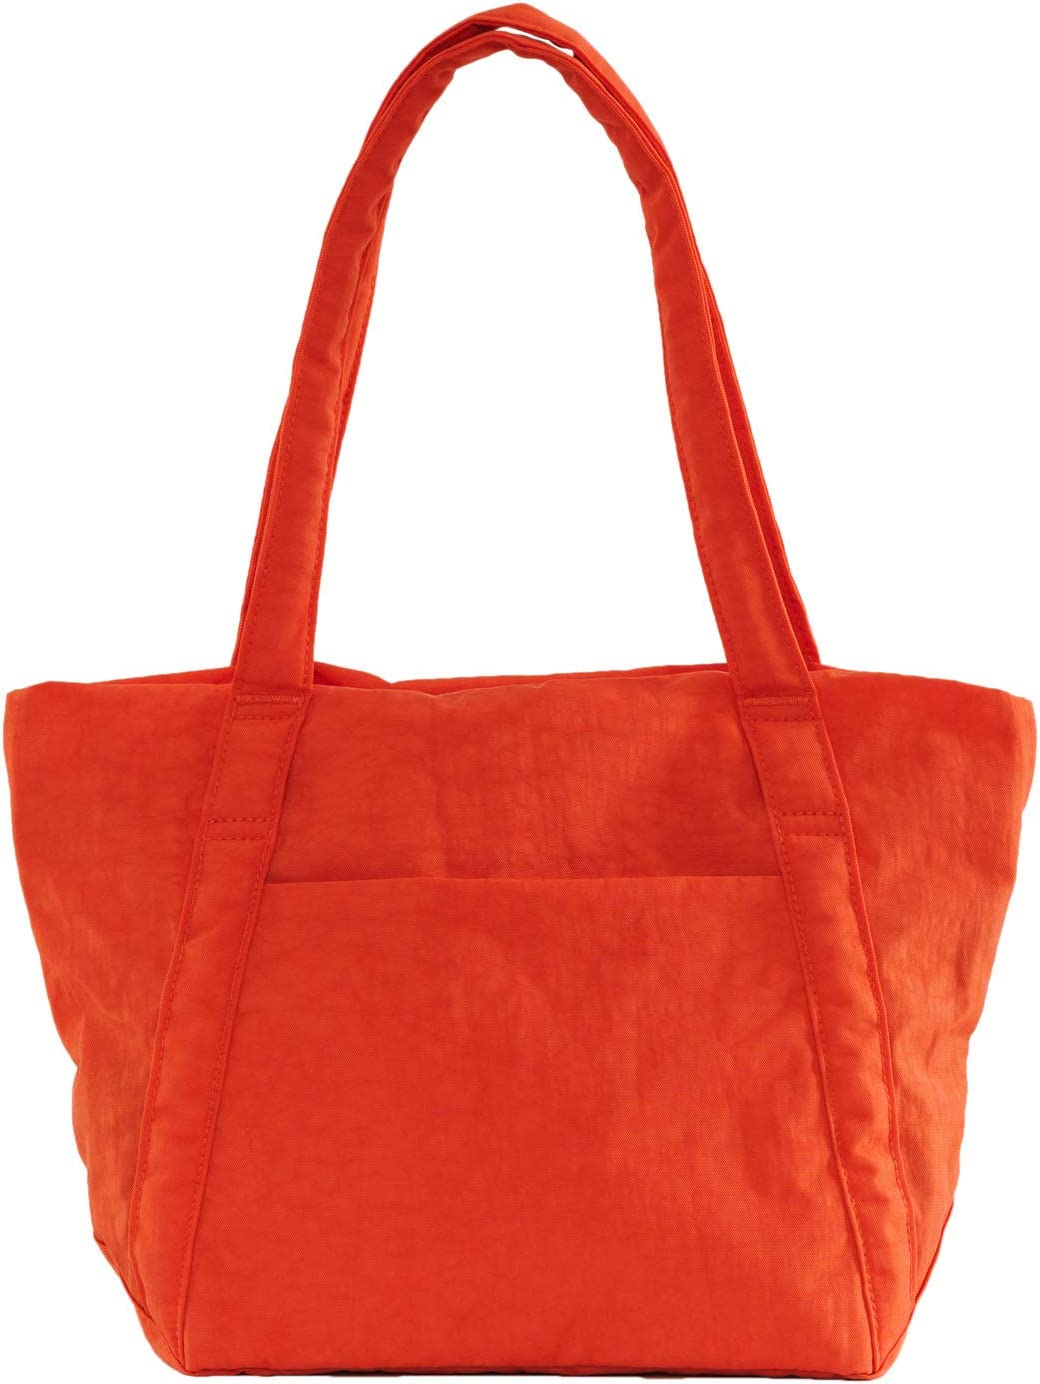 Lightweight Nylon Packable Tote for Travel or Everyday Use Cobalt BAGGU Mini Cloud Bag